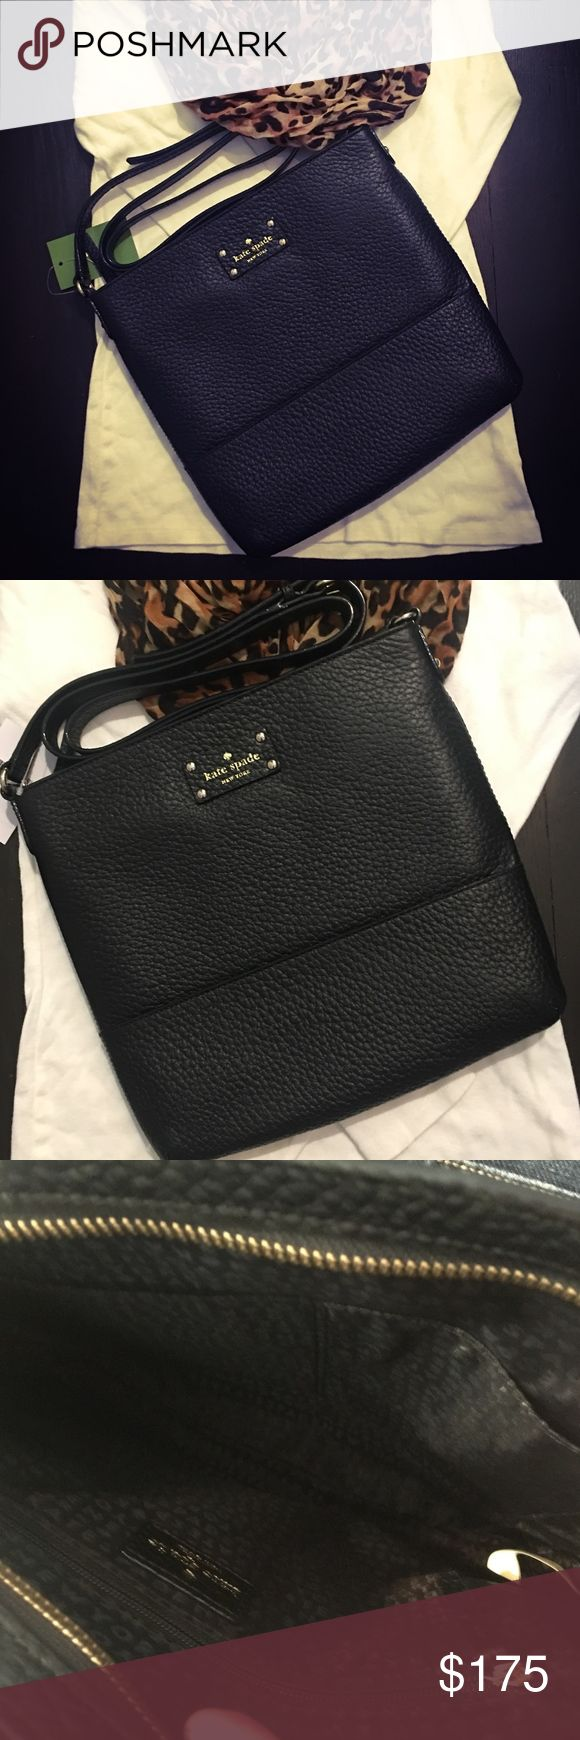 "Kate Spade Bay Street Cora Purse Kate Spade Bay Street Cora Purse CONDITION: NWT COLOR : Black • COWHIDE TRIM • 14K GOLDPLATED HARDWARE • ZIP CLOSURE  • CROSSBODY • ADJUSTABLE STRAP UP TO 47""  • MEASURES APPROX 10.1"" w x 10.1"" l x 1.2""d  • Embossed KATE SPADE NY LICENSE PLATE • INTERIOR HAS 2 SLIP POCKETS/1 ZIPPERED POCKET  • JACQUARD LINING  • DUST BAG NOT INCLUDED   Last 2 photos are stock photos  Feel free to make me an offer! Or bundle and I'll send your a private discounted price! kate…"